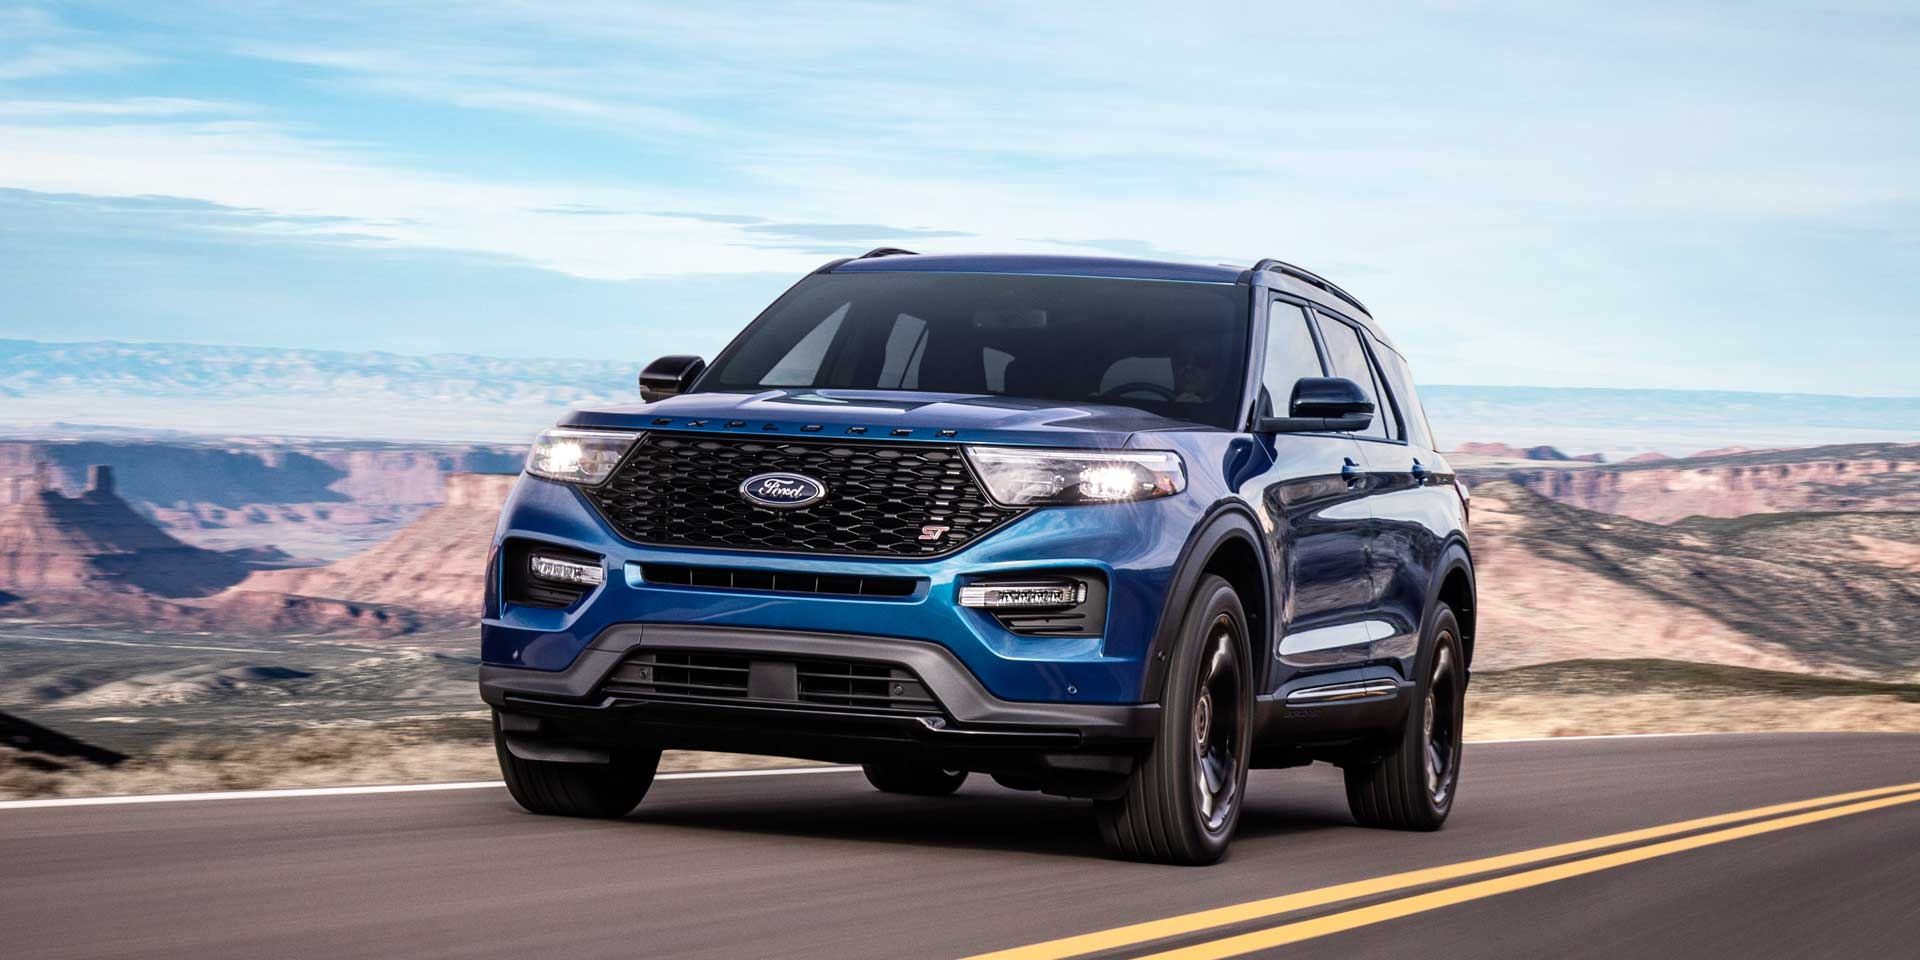 2020 - Ford - Explorer - Vehicles On Display